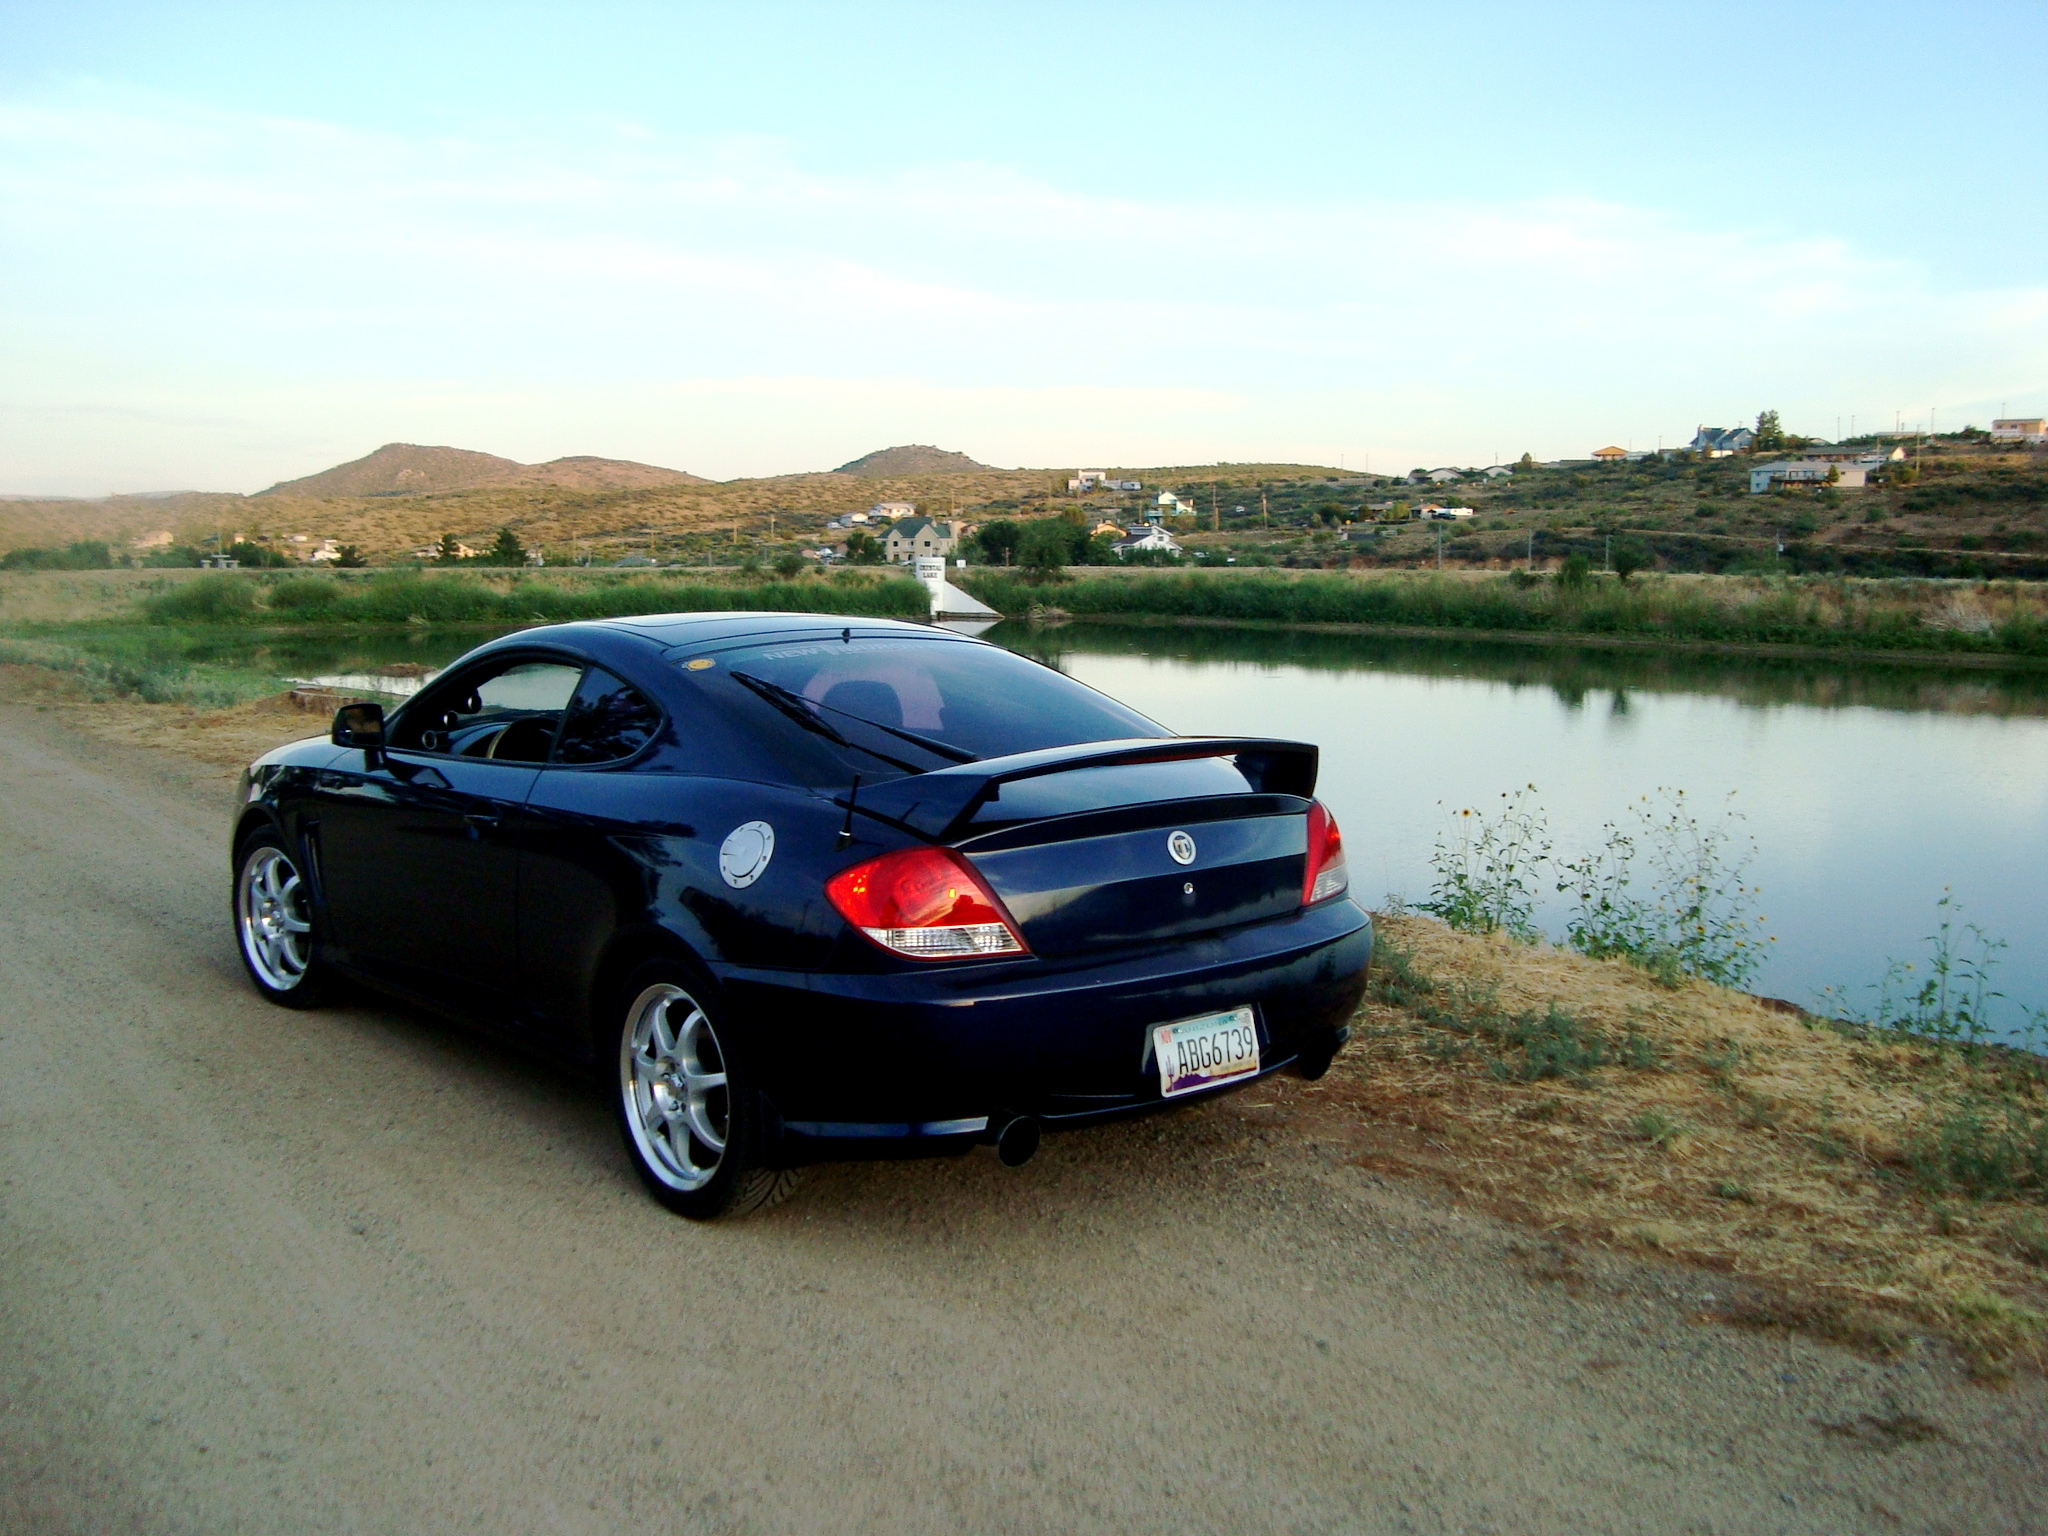 tuscanigtfl 39 s 2003 hyundai tiburon gt coupe 2d in mayer az. Black Bedroom Furniture Sets. Home Design Ideas